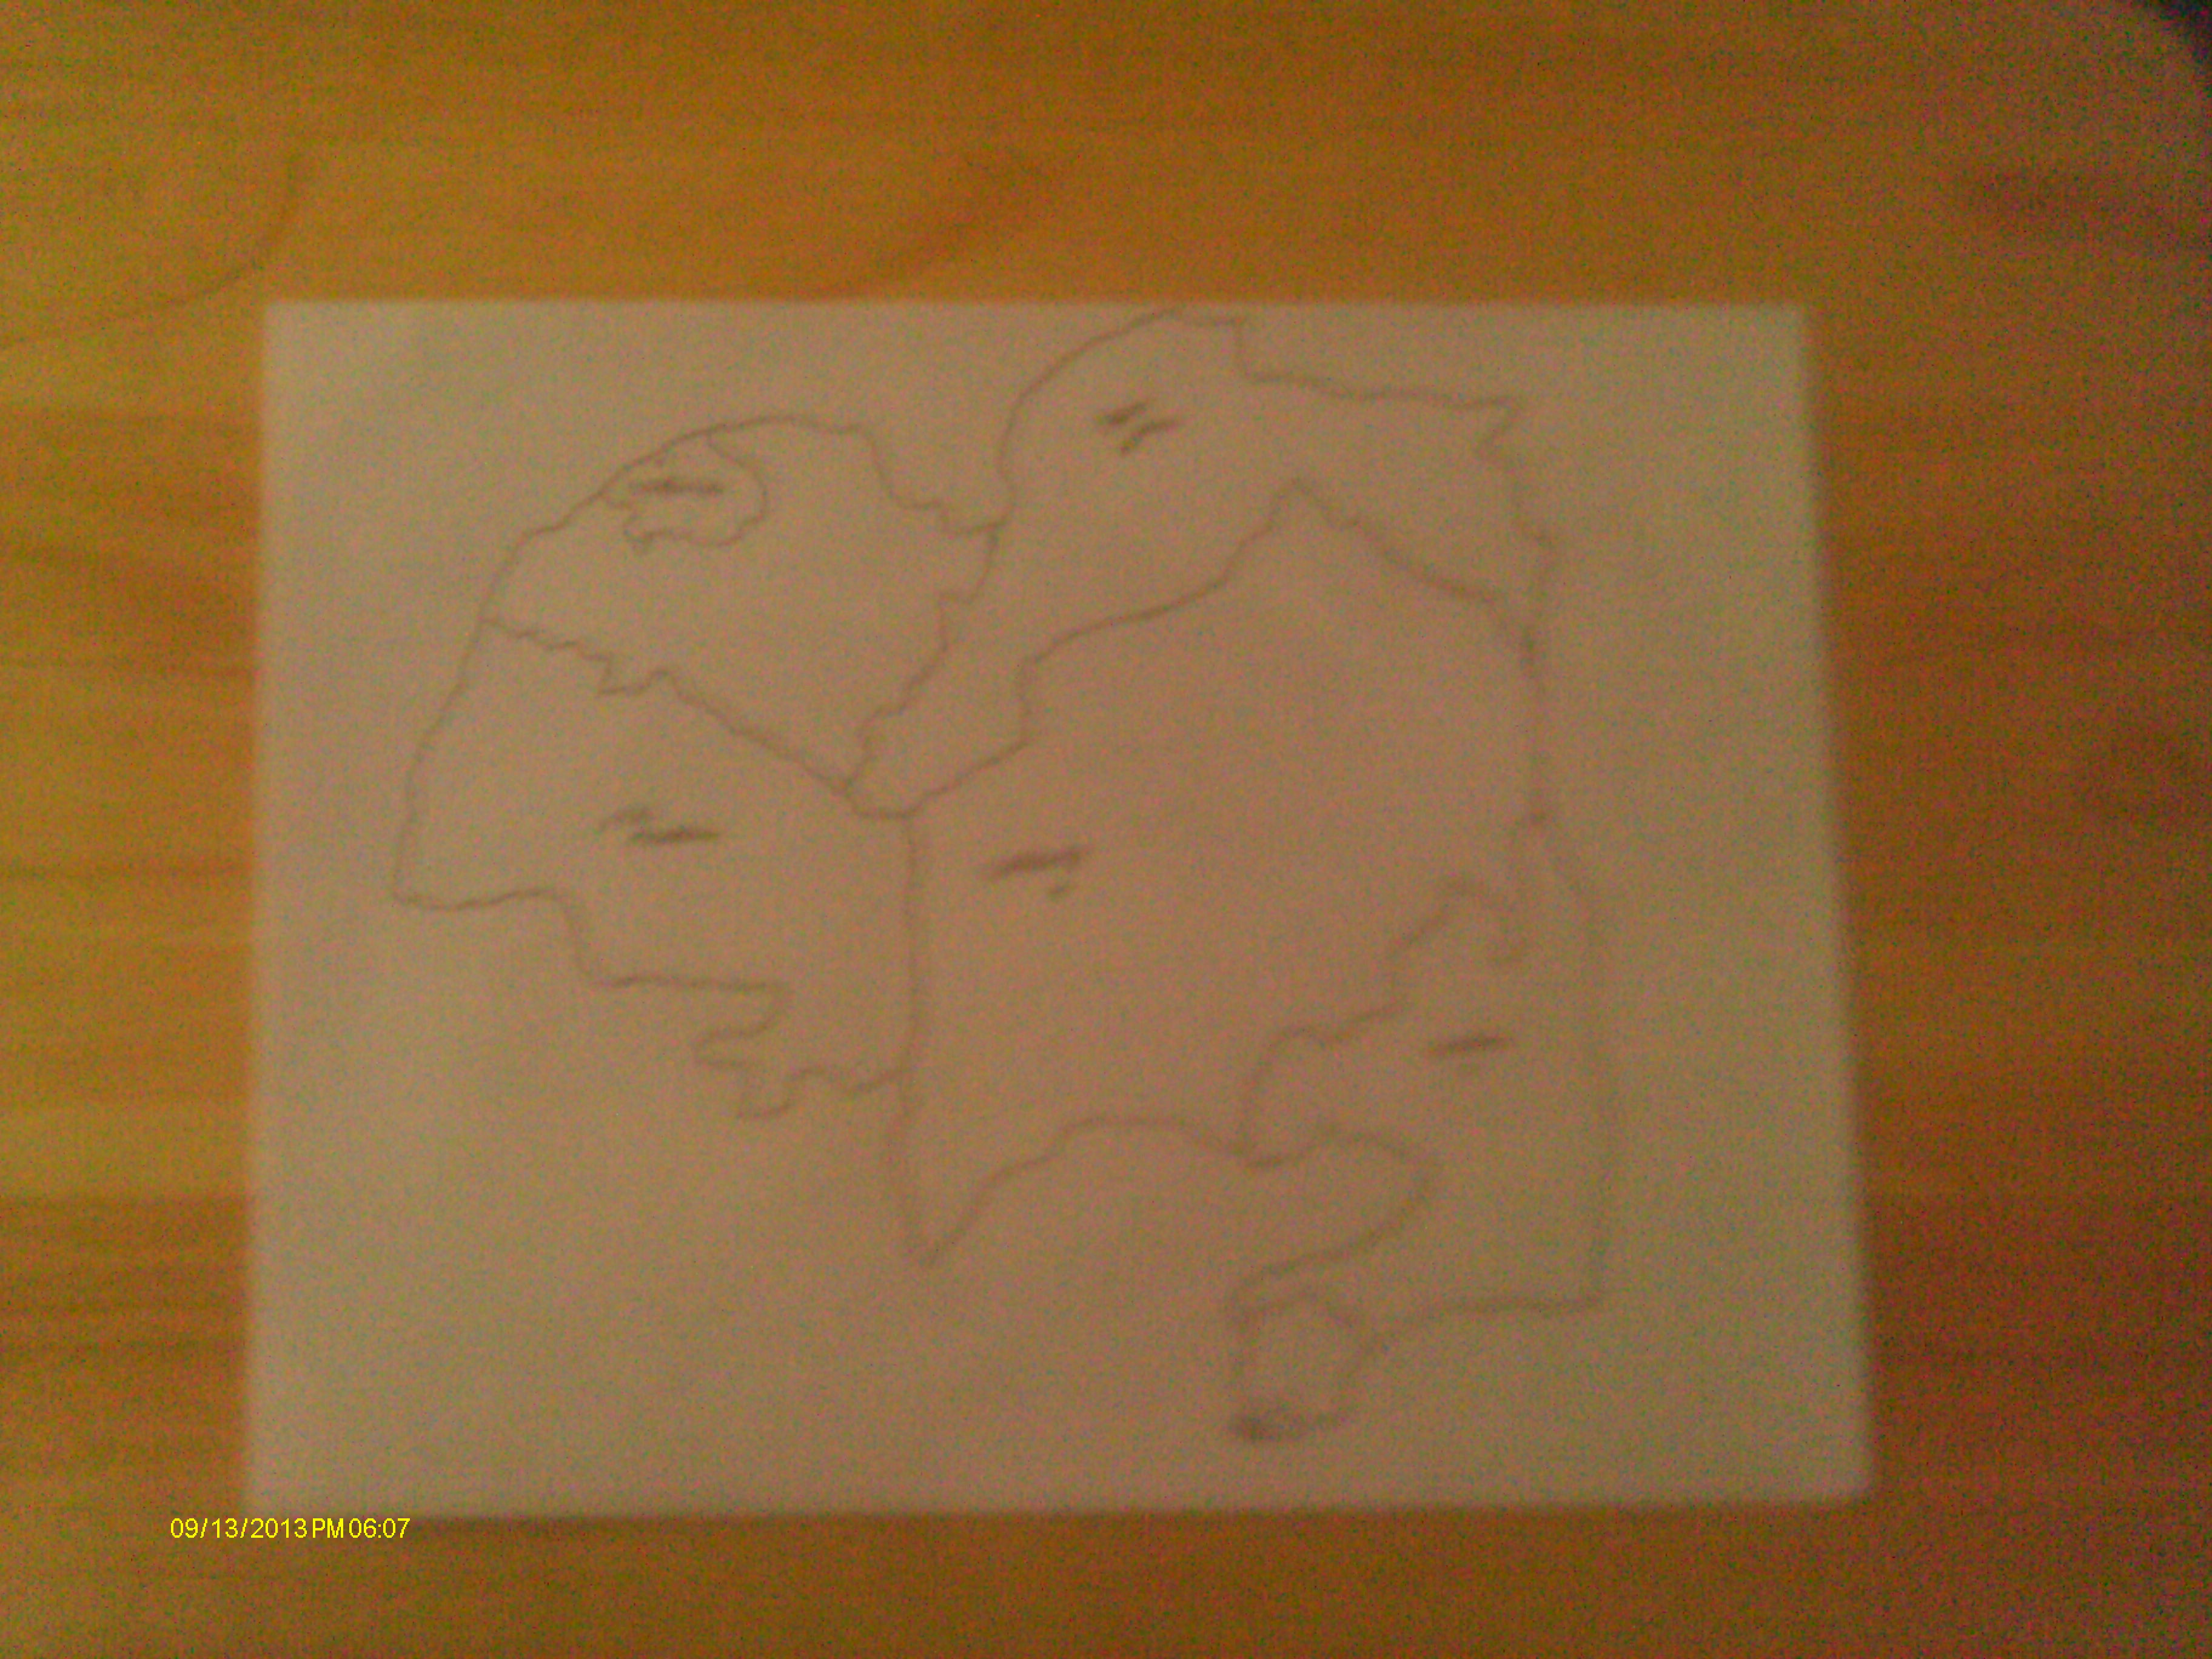 My first map without details. I'm start on details now. (13 Sept. 13)